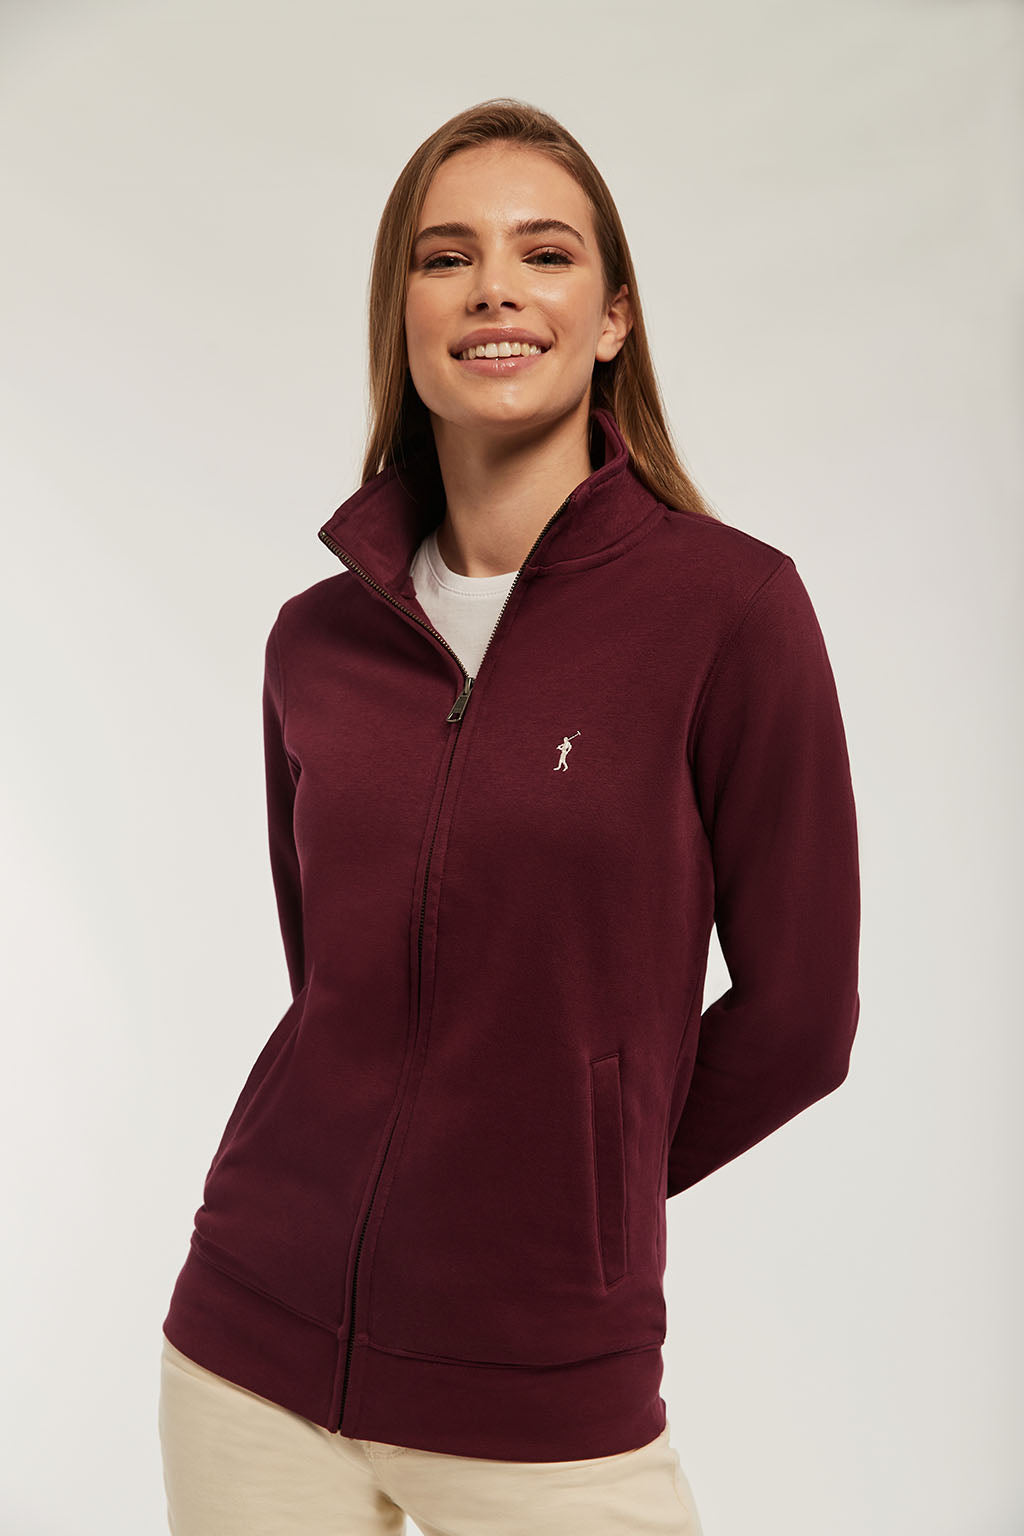 Burgundy zipped sweatshirt with embroidered logo